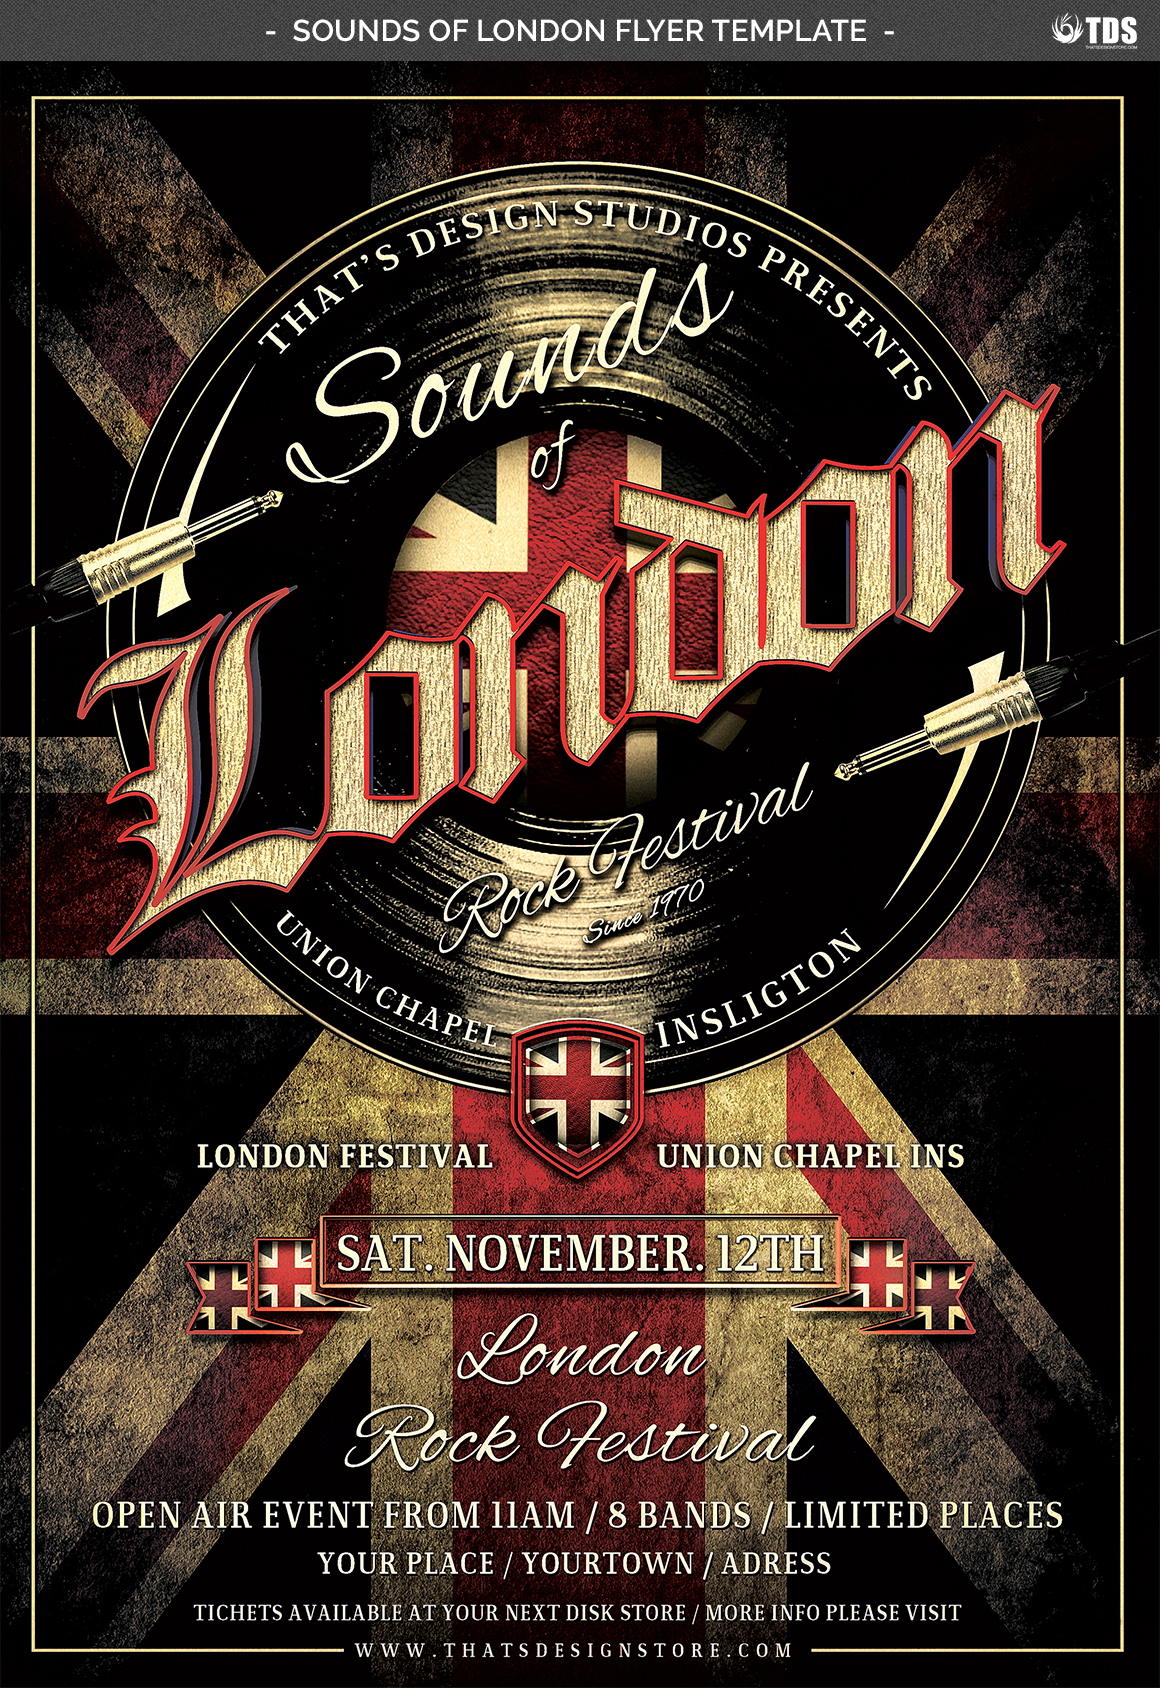 Sounds of London Flyer Template example image 2